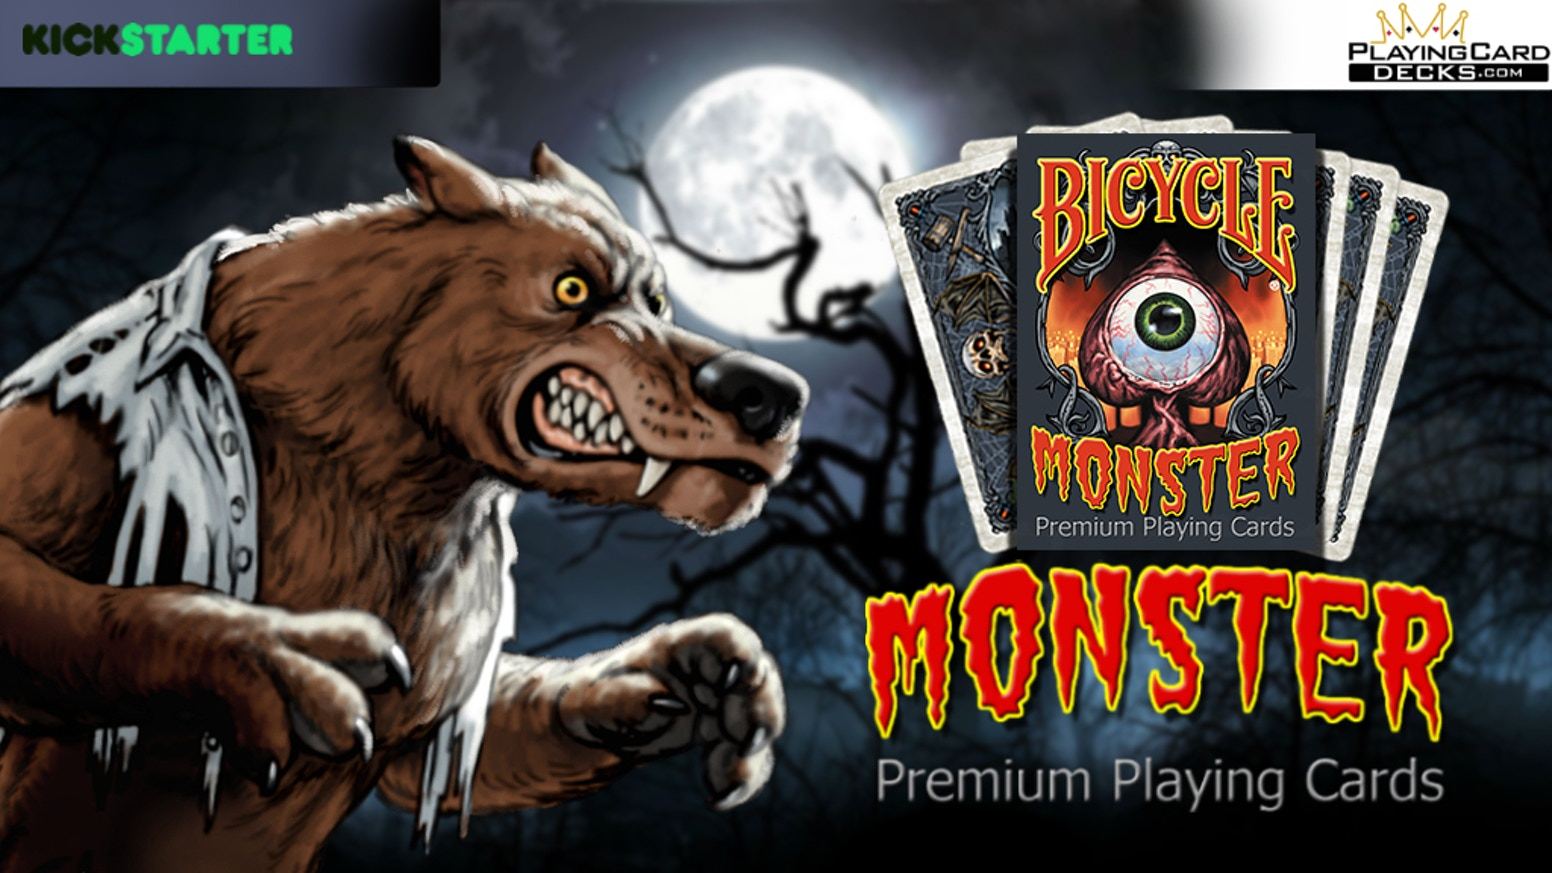 A new spooky deck of your favorite classic monsters in a fun cartoon style. Limited edition suitable for all uses, games, tricks, etc!